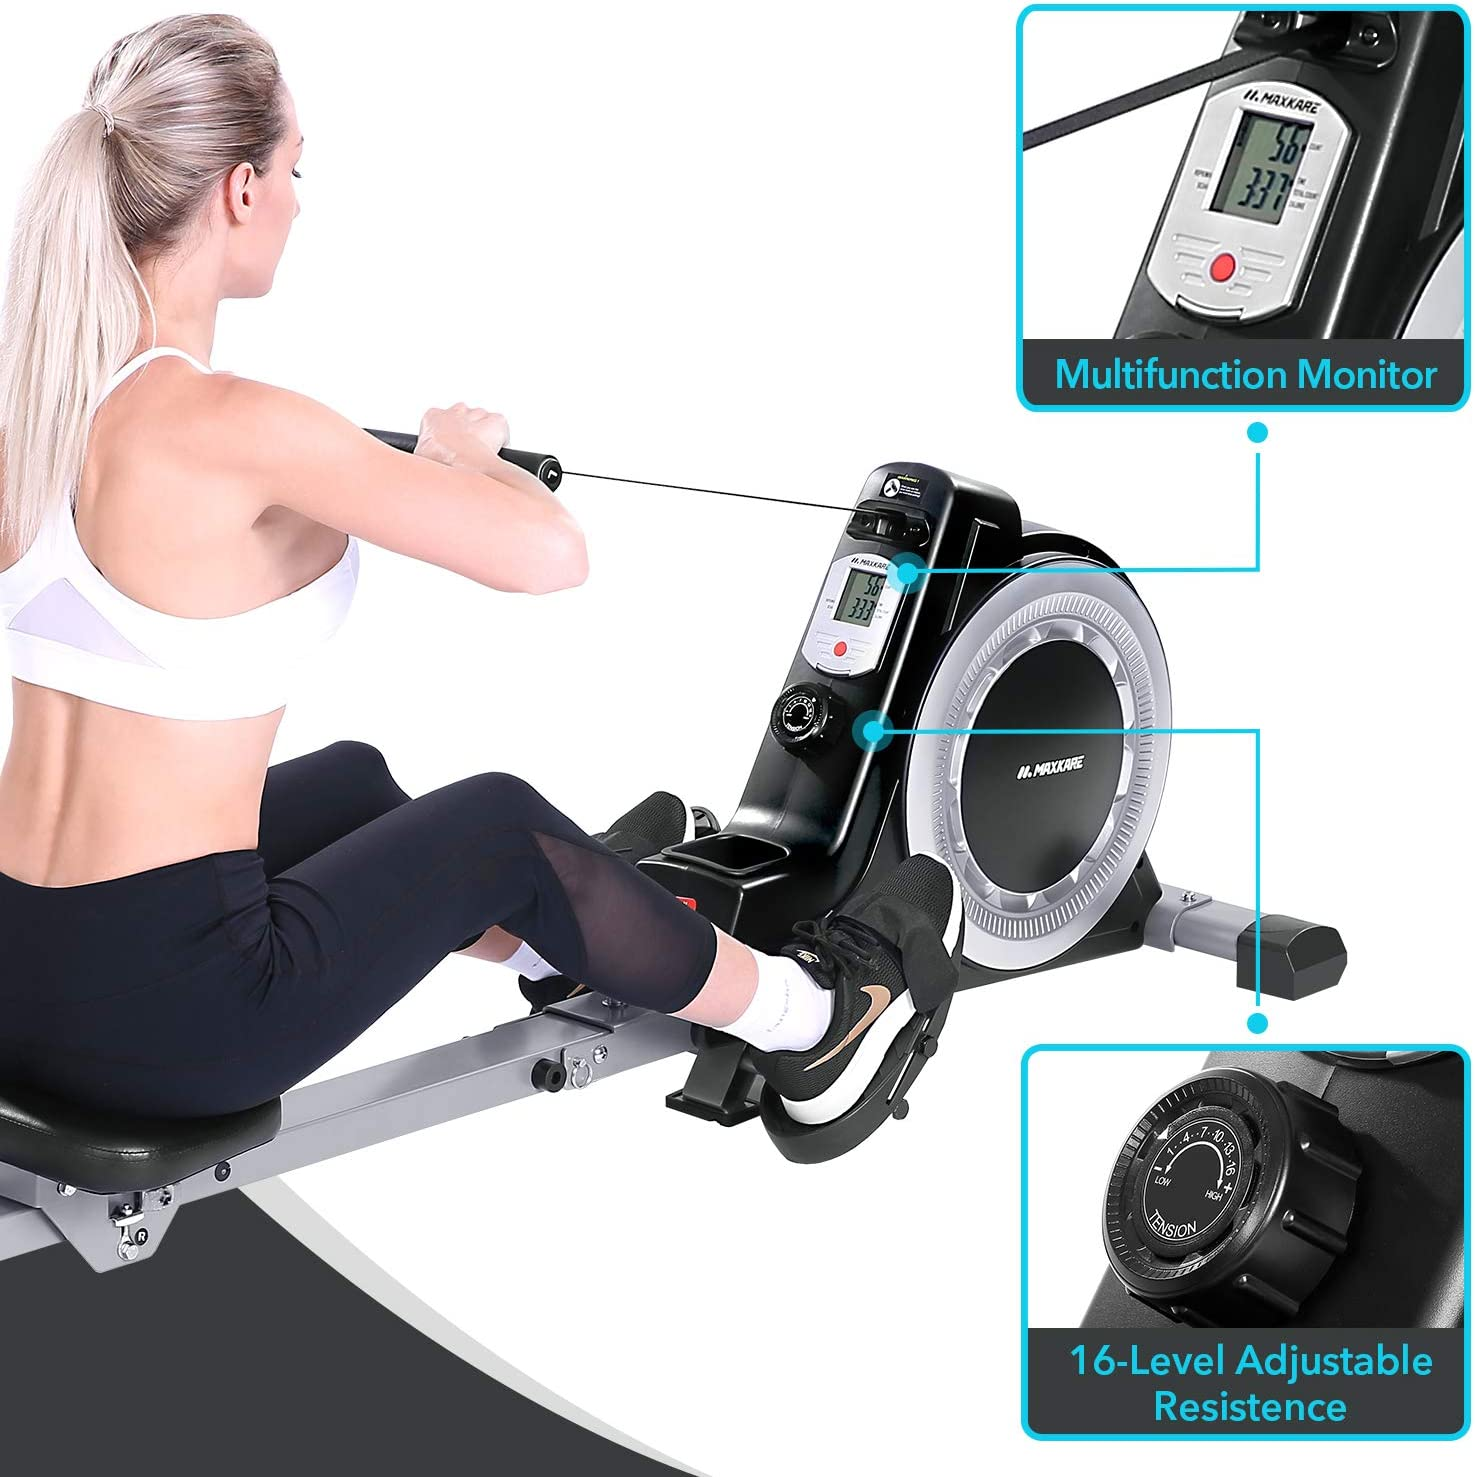 Maxkare rowing machine